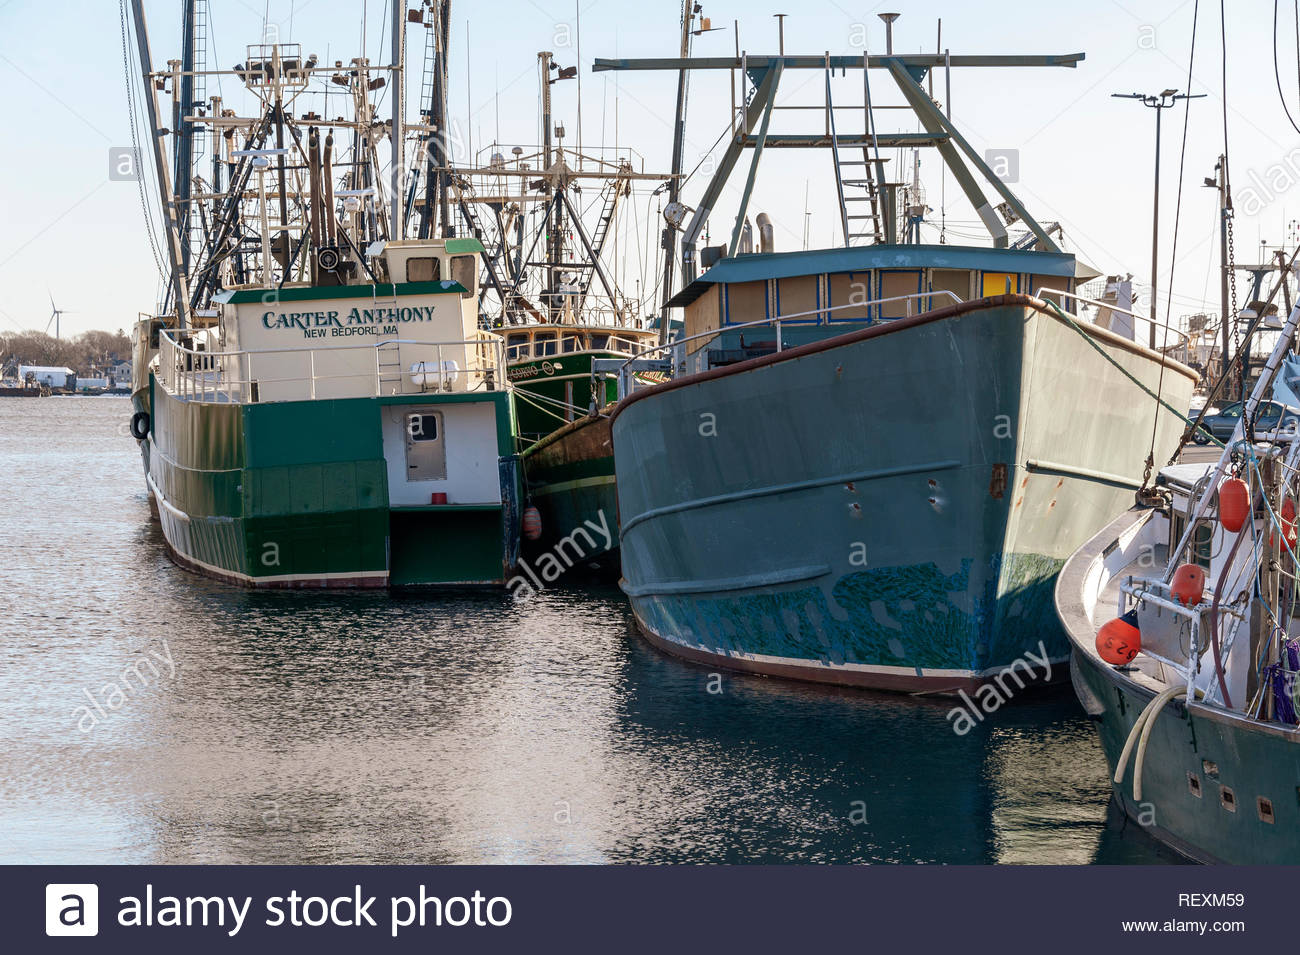 New Bedford, Massachusetts, USA - January 12, 2019: Cluster of commercial fishing vessels along New Bedford wharf - Stock Image